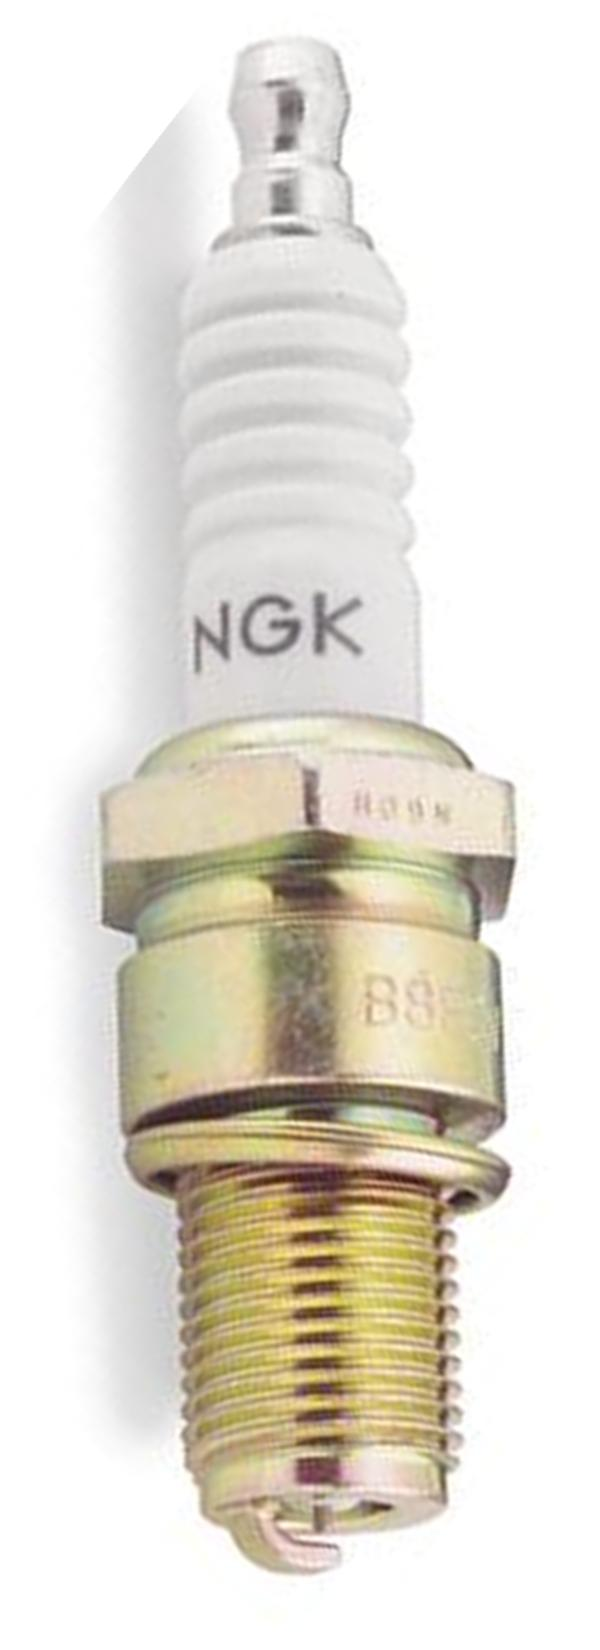 NGK BUHX Surface Gap Plugs BUHX/2522